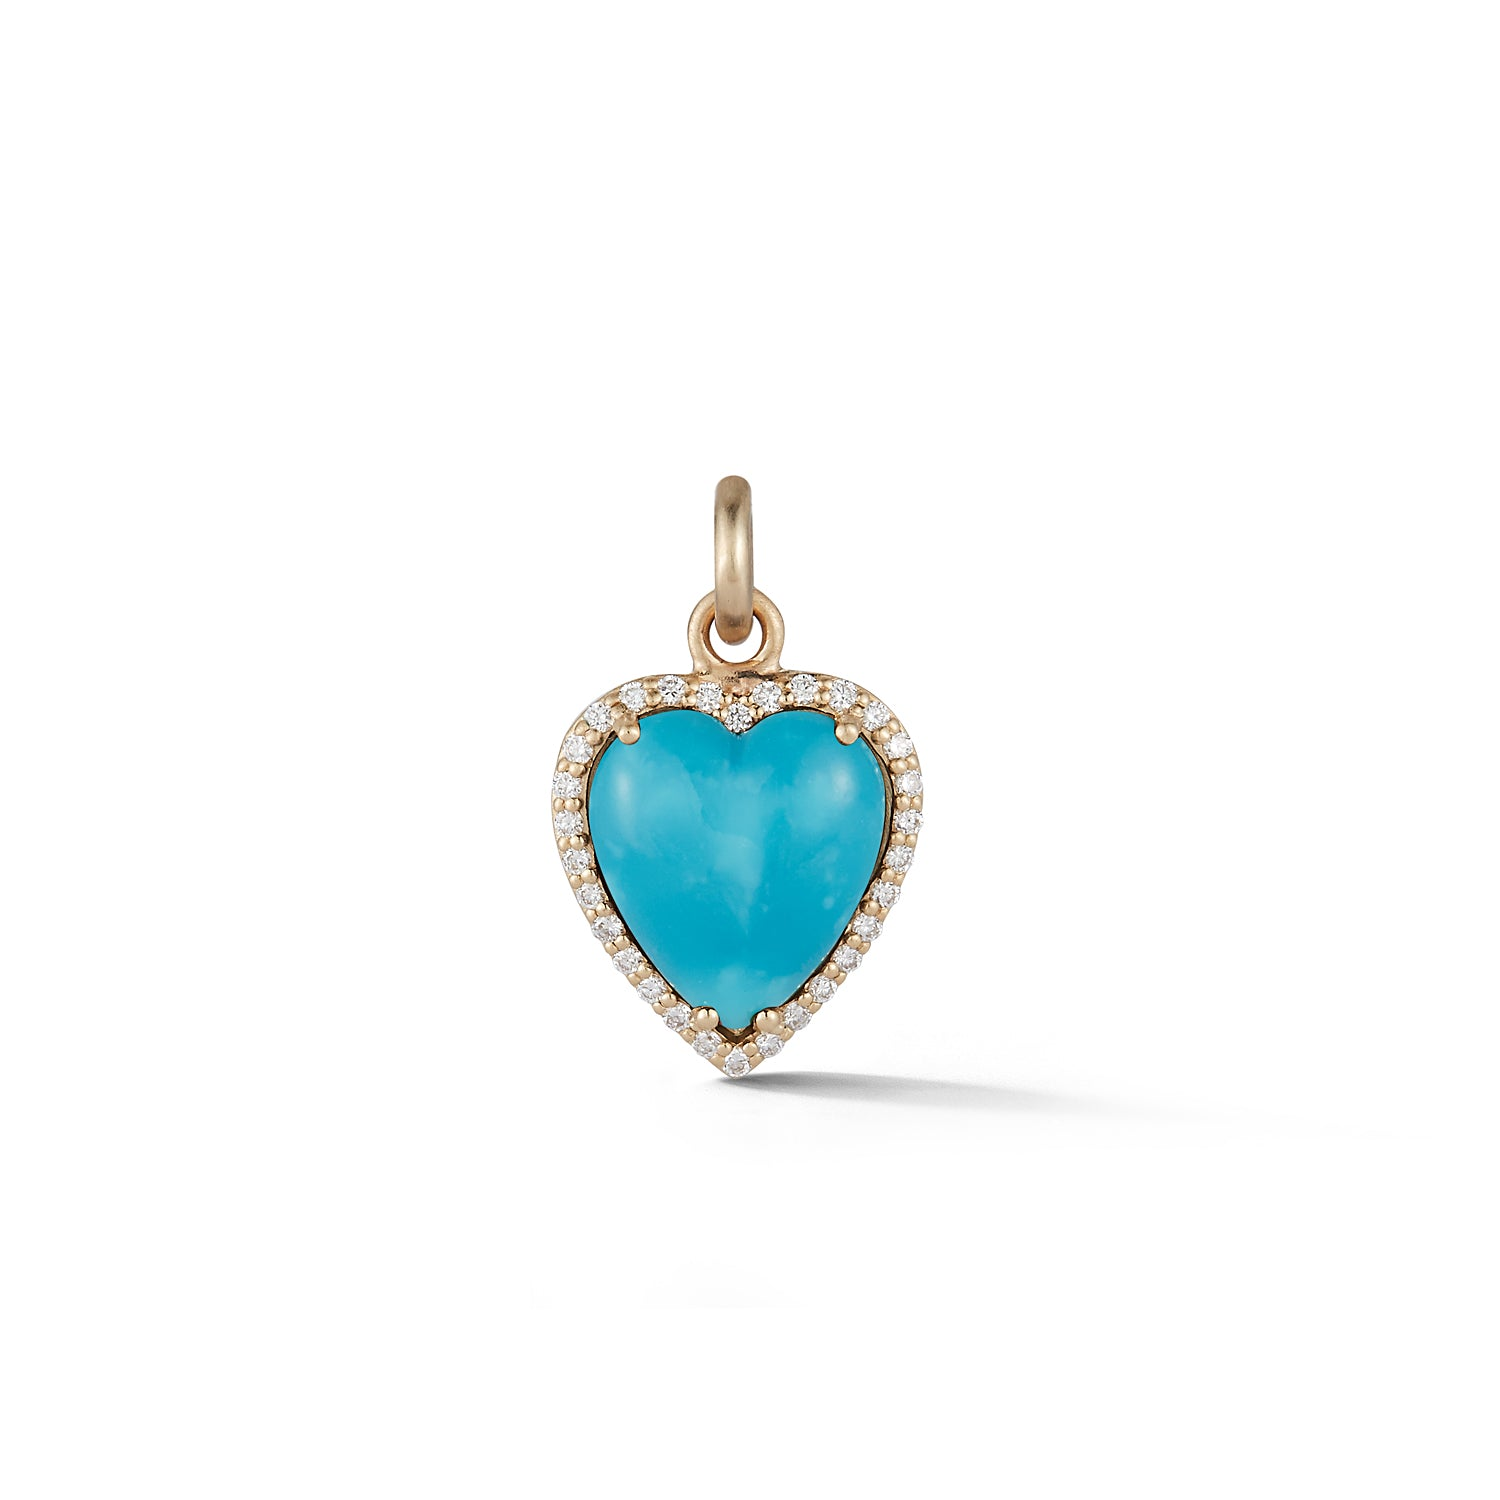 Storrow 14K Gold Diamond & Turquoise Alana Heart Charm